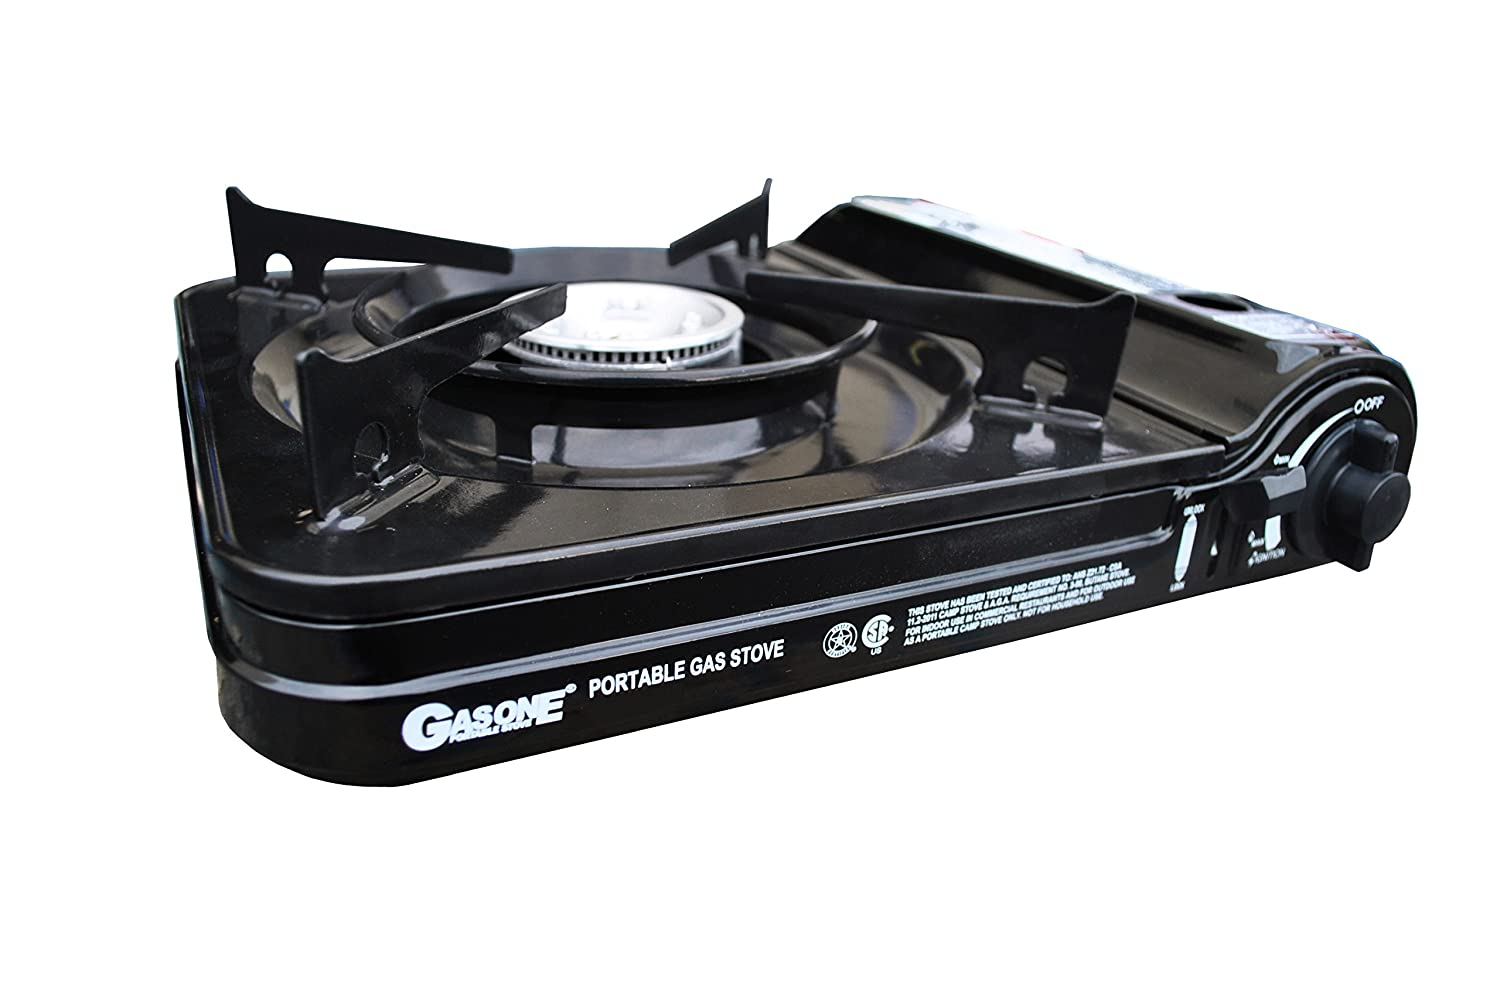 gas stove clipart black and white. amazon.com : gas one new 10, 000 btu csa list portable butane gas stove with carrying case listed sports \u0026 outdoors clipart black and white